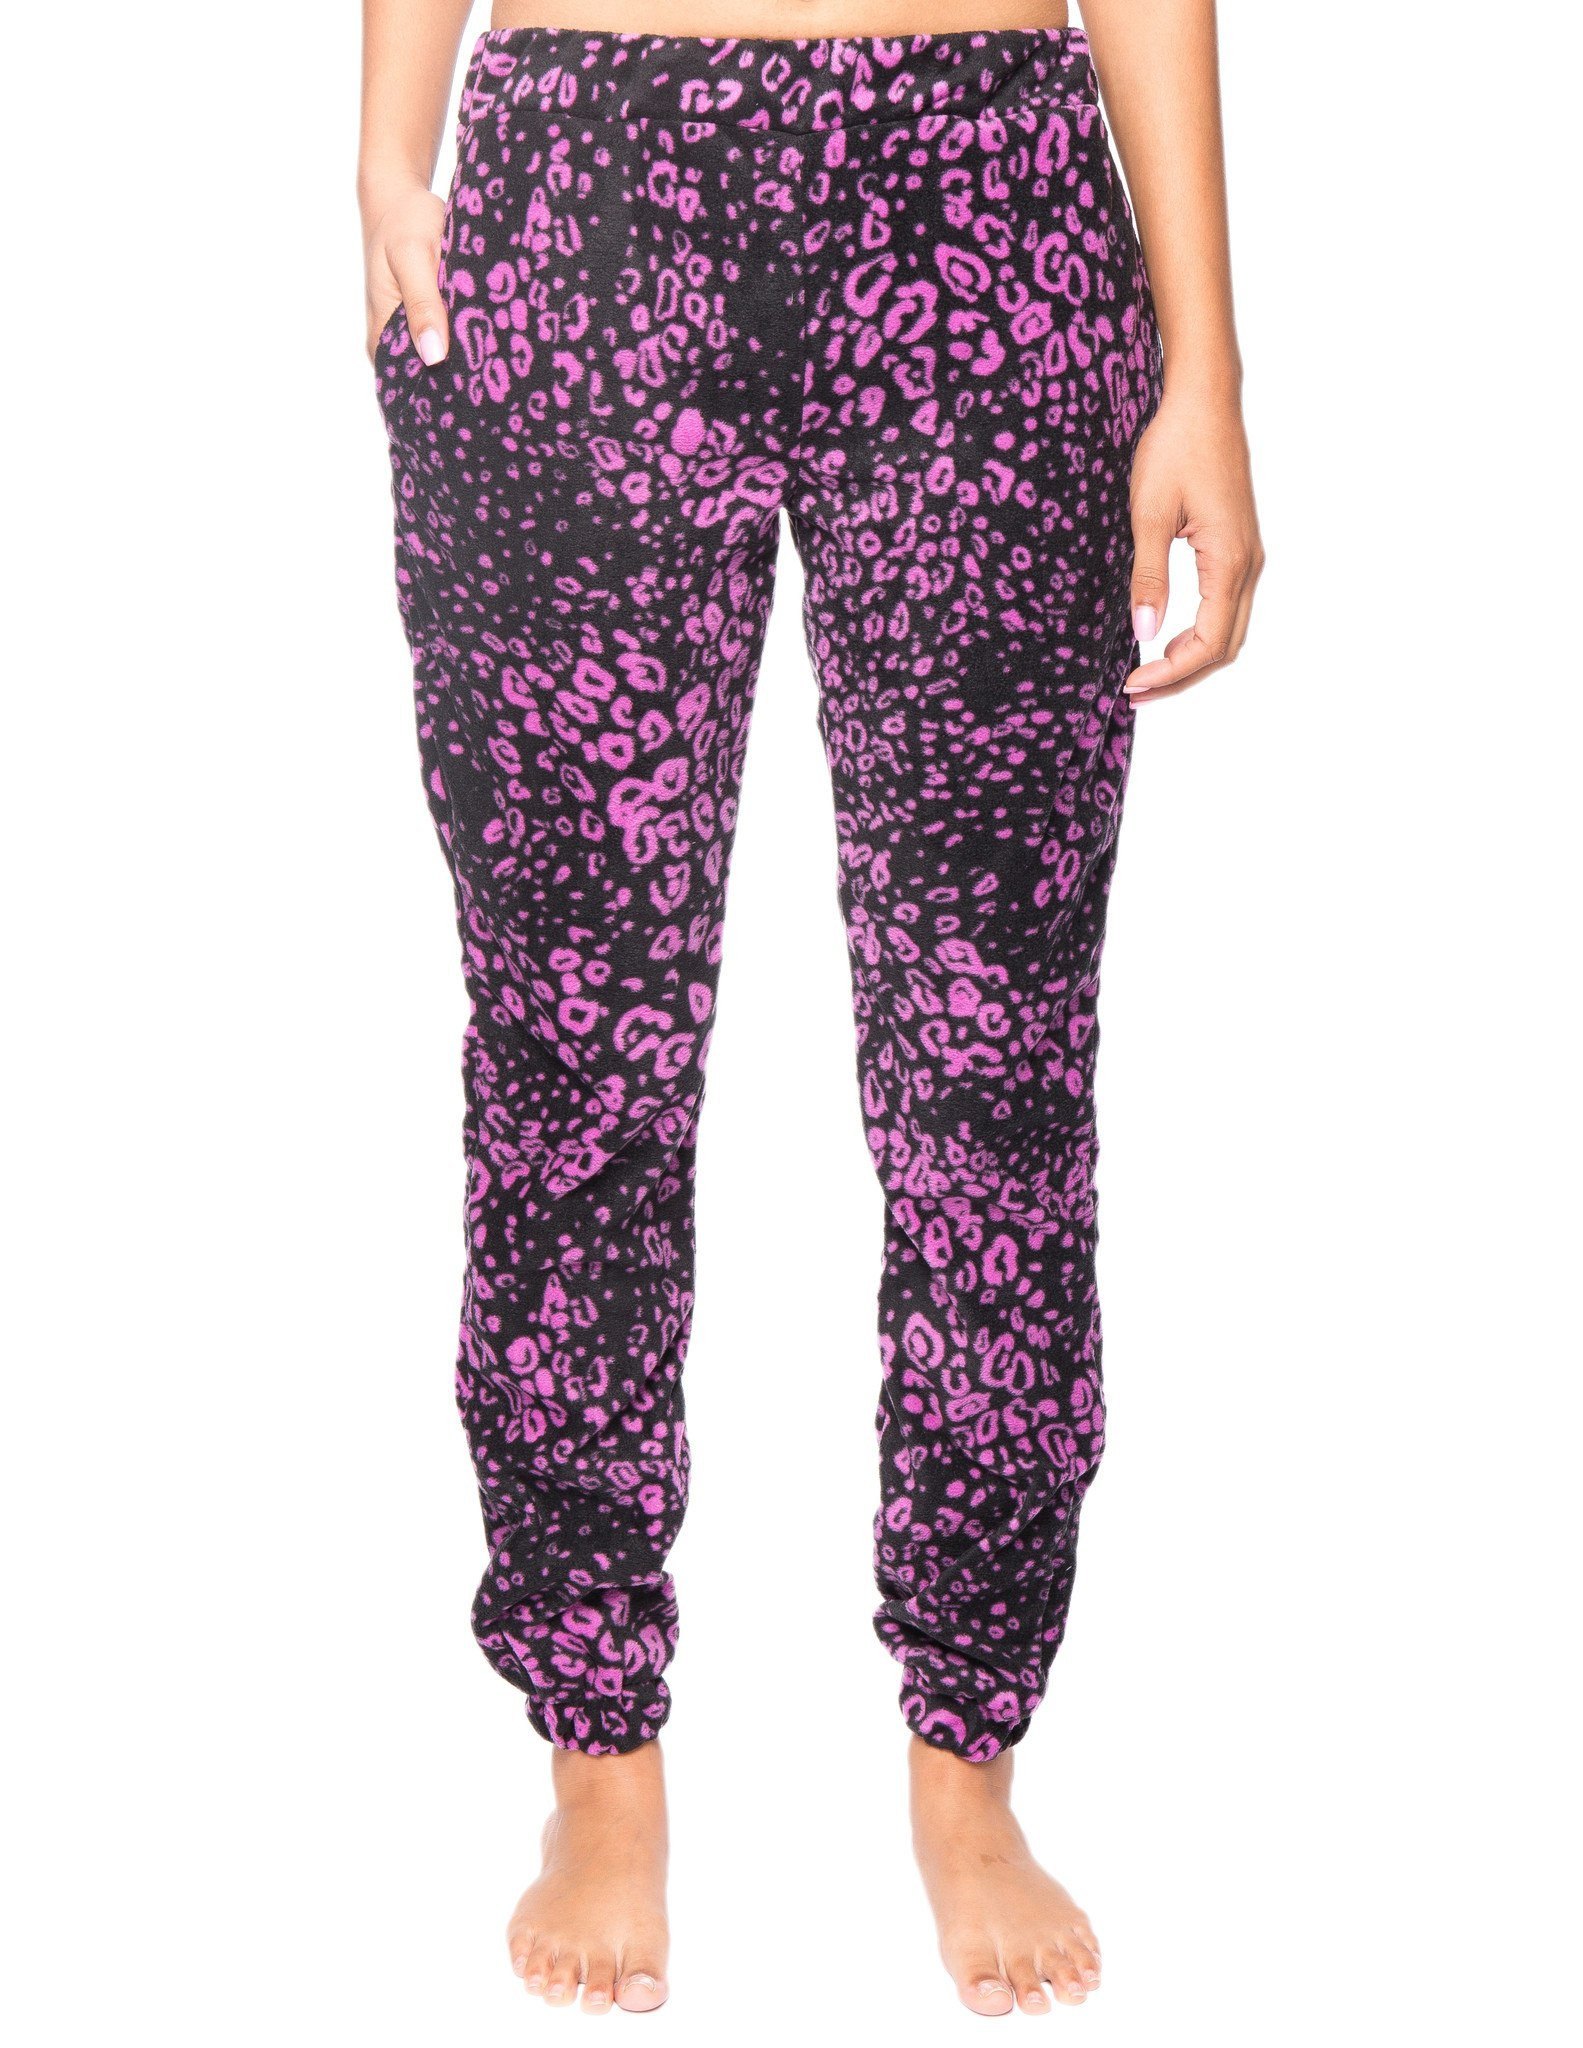 Women's Microfleece Jogger Lounge Pant - Leopard Black/Purple - Large